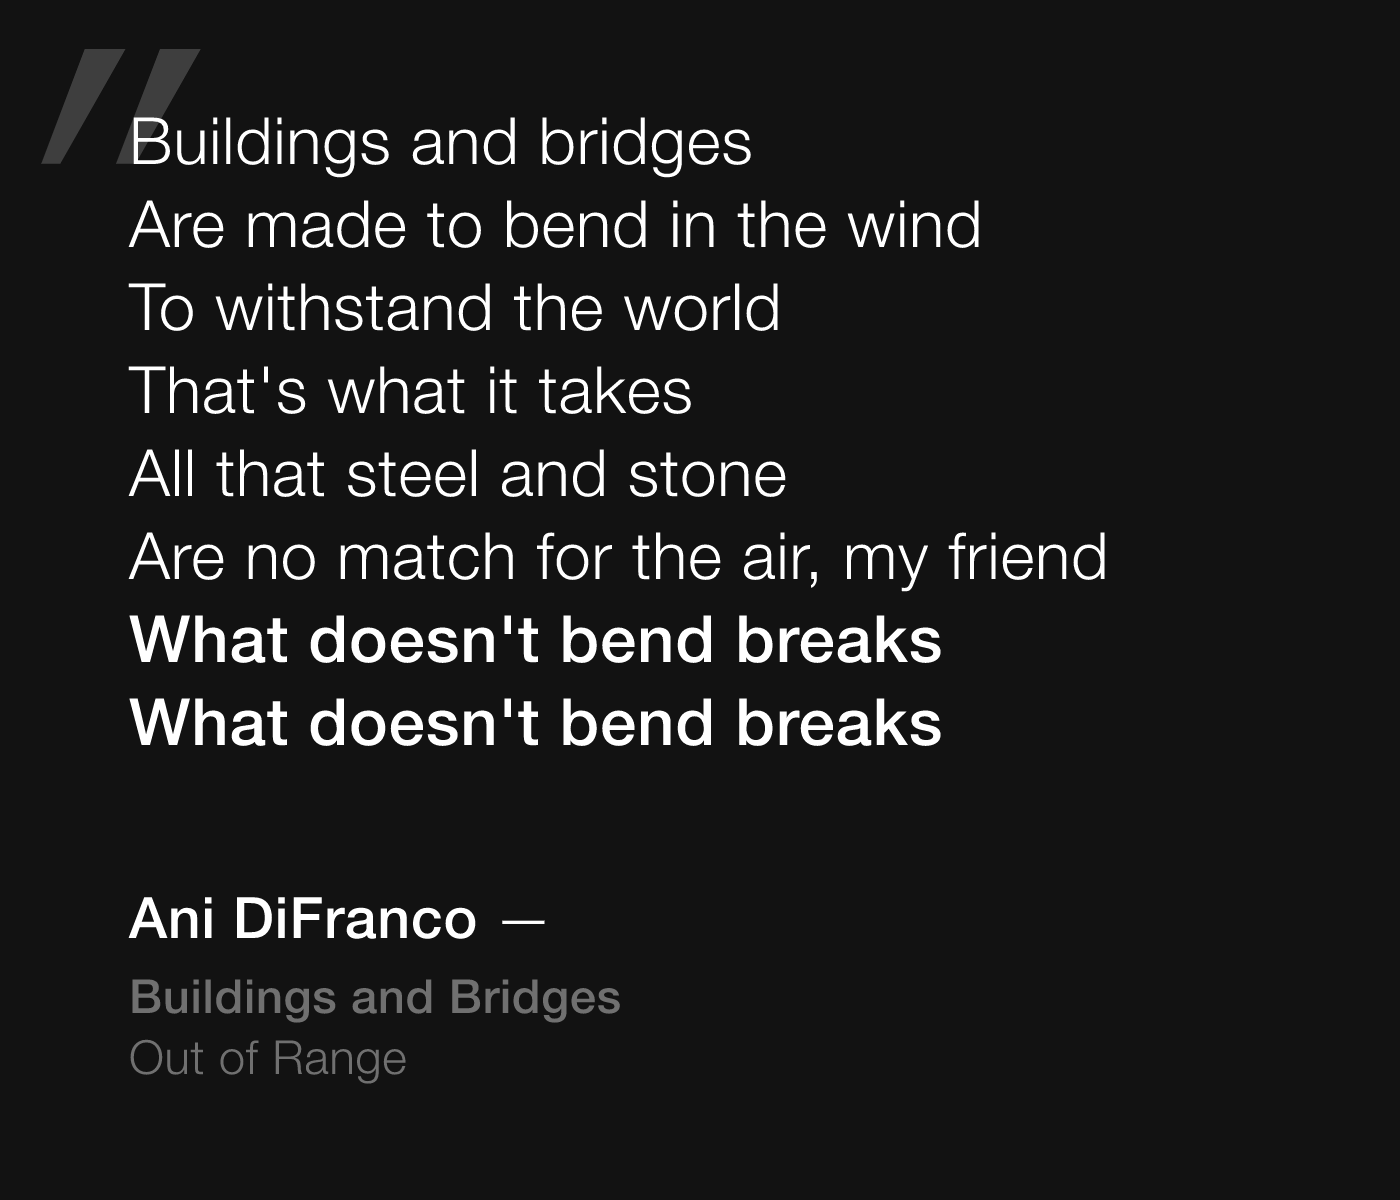 Ani DiFranco lyrics from Buildings and Bridges: Buildings and bridges, Are made to bend in the wind, To withstand the world, That's what it takes, All that steel and stone, Are no match for the air, my friend, What doesn't bend breaks, What doesn't bend breaks